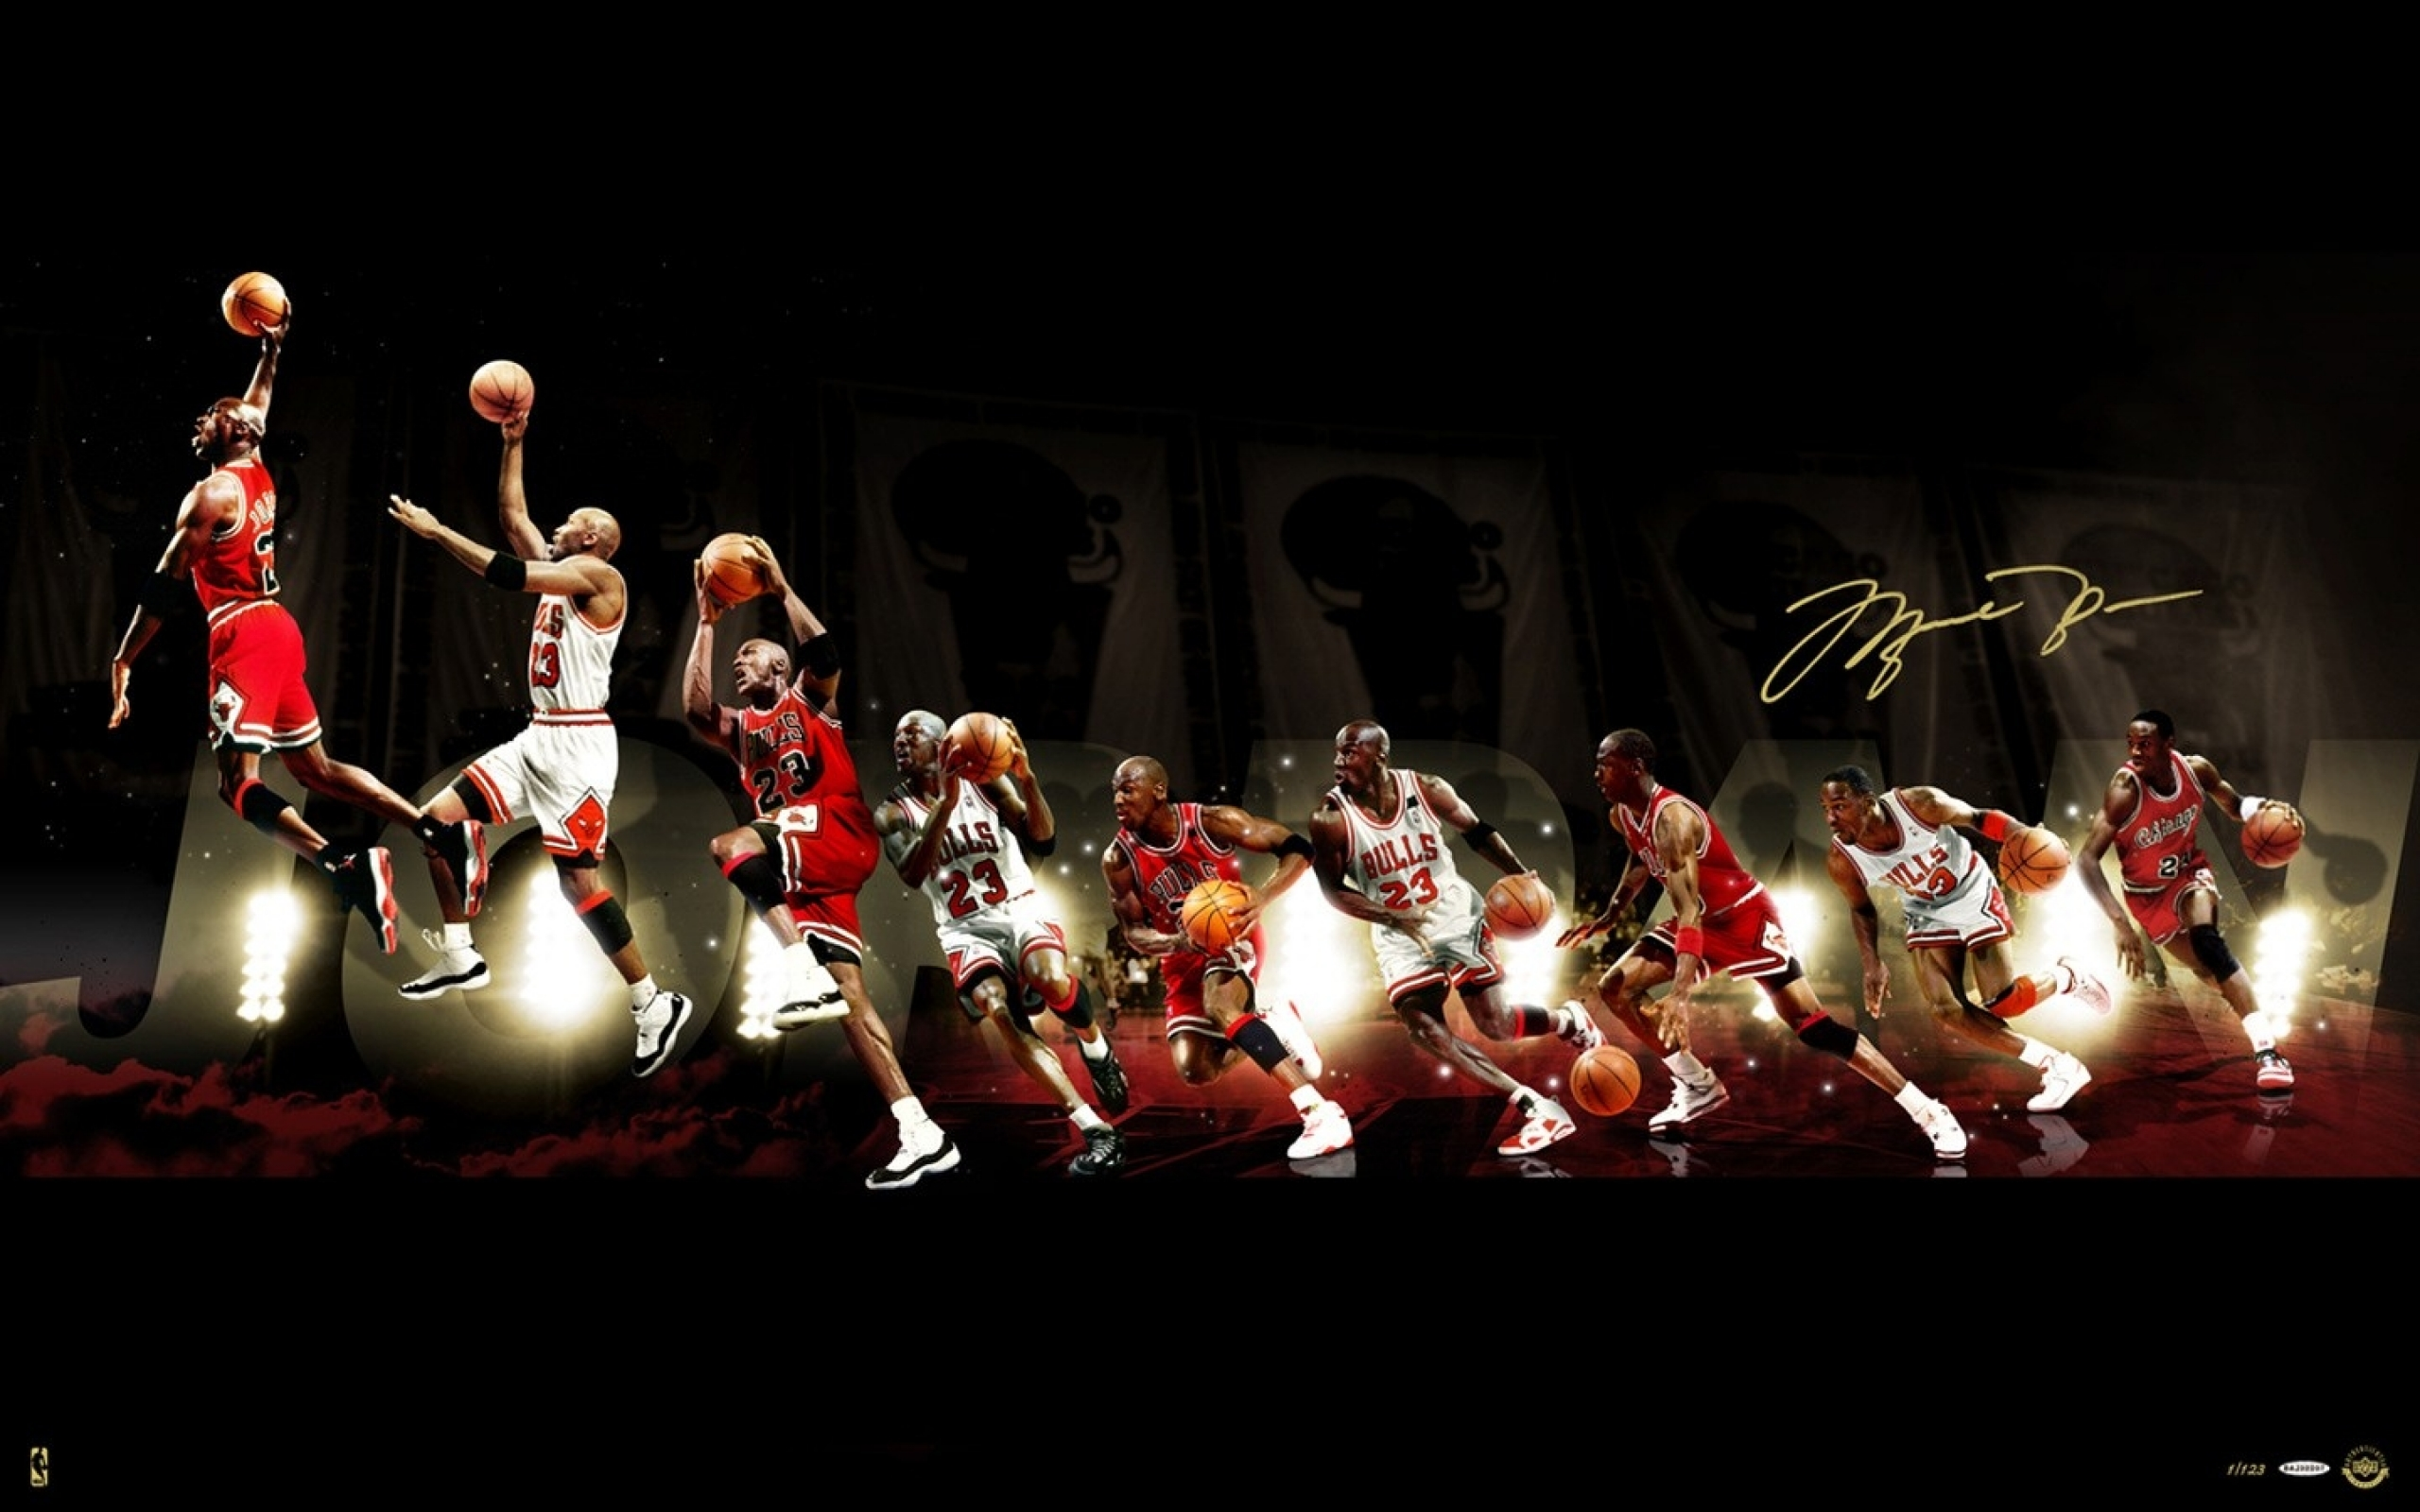 2560x1600 - Michael Jordan Wallpapers 2